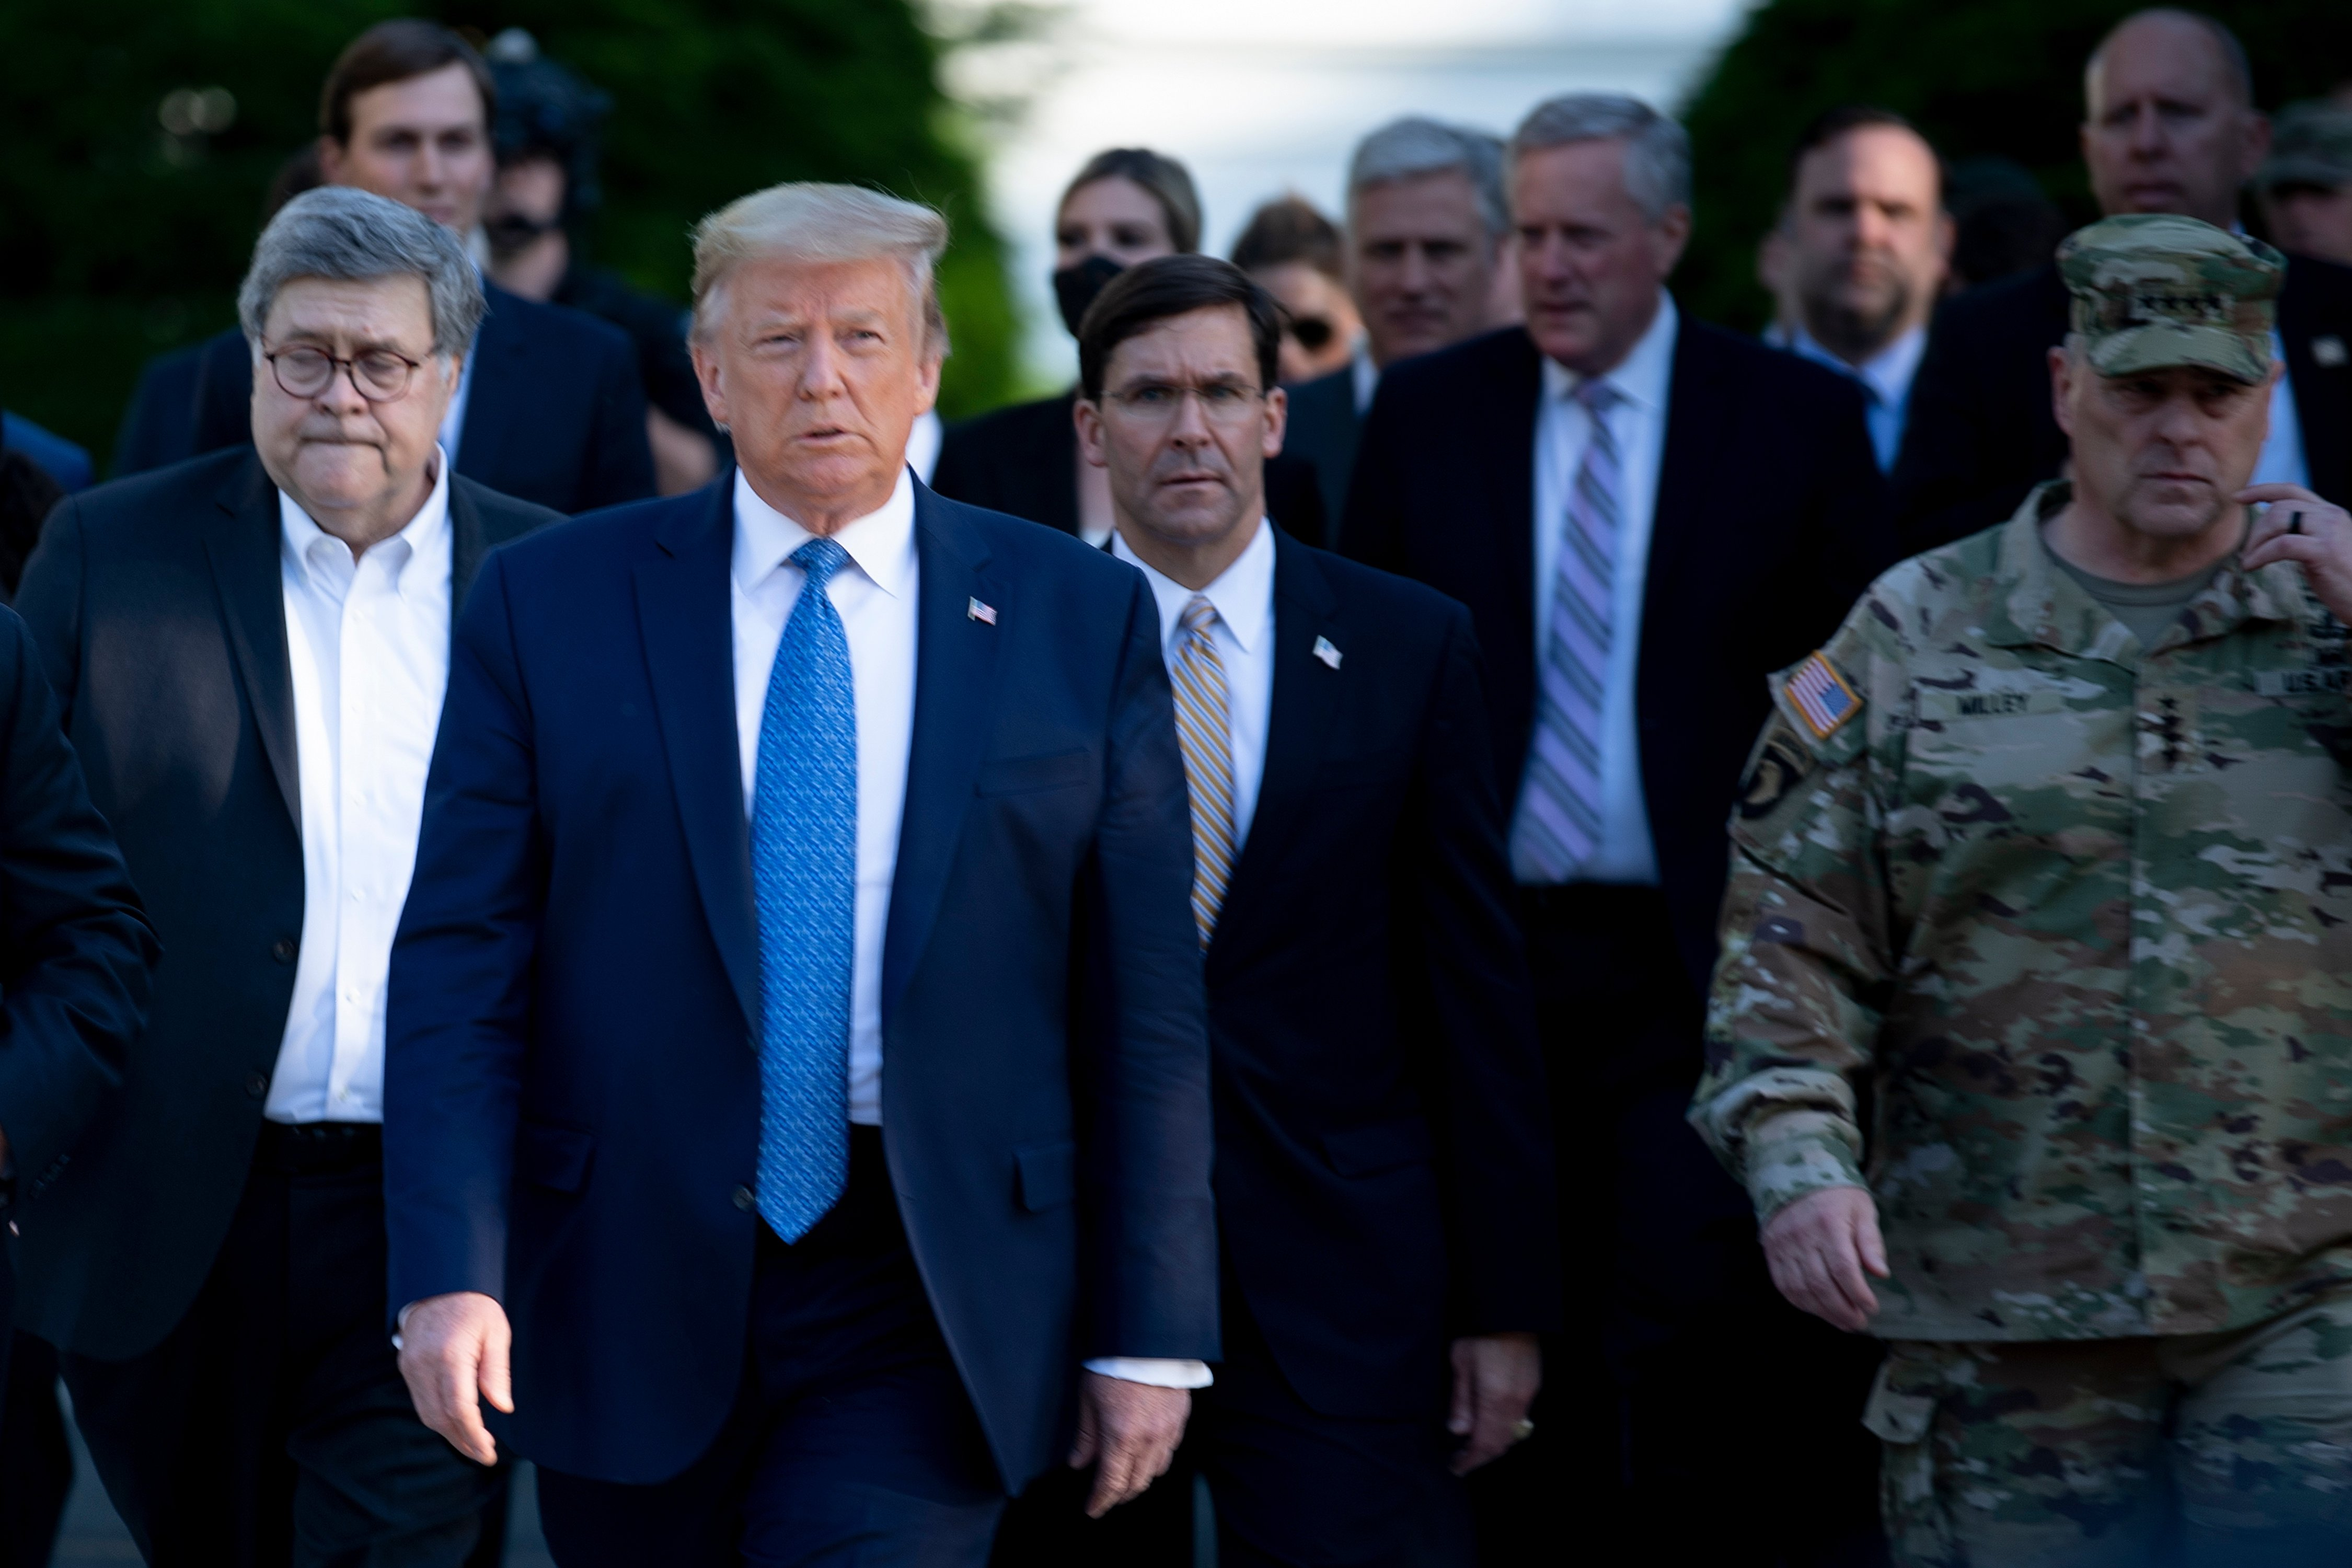 US President Donald Trump walks with US Attorney General William Barr (L), US Secretary of Defense Mark T. Esper (C), Chairman of the Joint Chiefs of Staff Mark A. Milley (R), and others from the White House to visit St. John's Church after the area was cleared of people protesting the death of George Floyd June 1, 2020, in Washington, DC. - US President Donald Trump was due to make a televised address to the nation on Monday after days of anti-racism protests against police brutality that have erupted into violence. The White House announced that the president would make remarks imminently after he has been criticized for not publicly addressing in the crisis in recent days. (Photo by BRENDAN SMIALOWSKI/AFP via Getty Images)